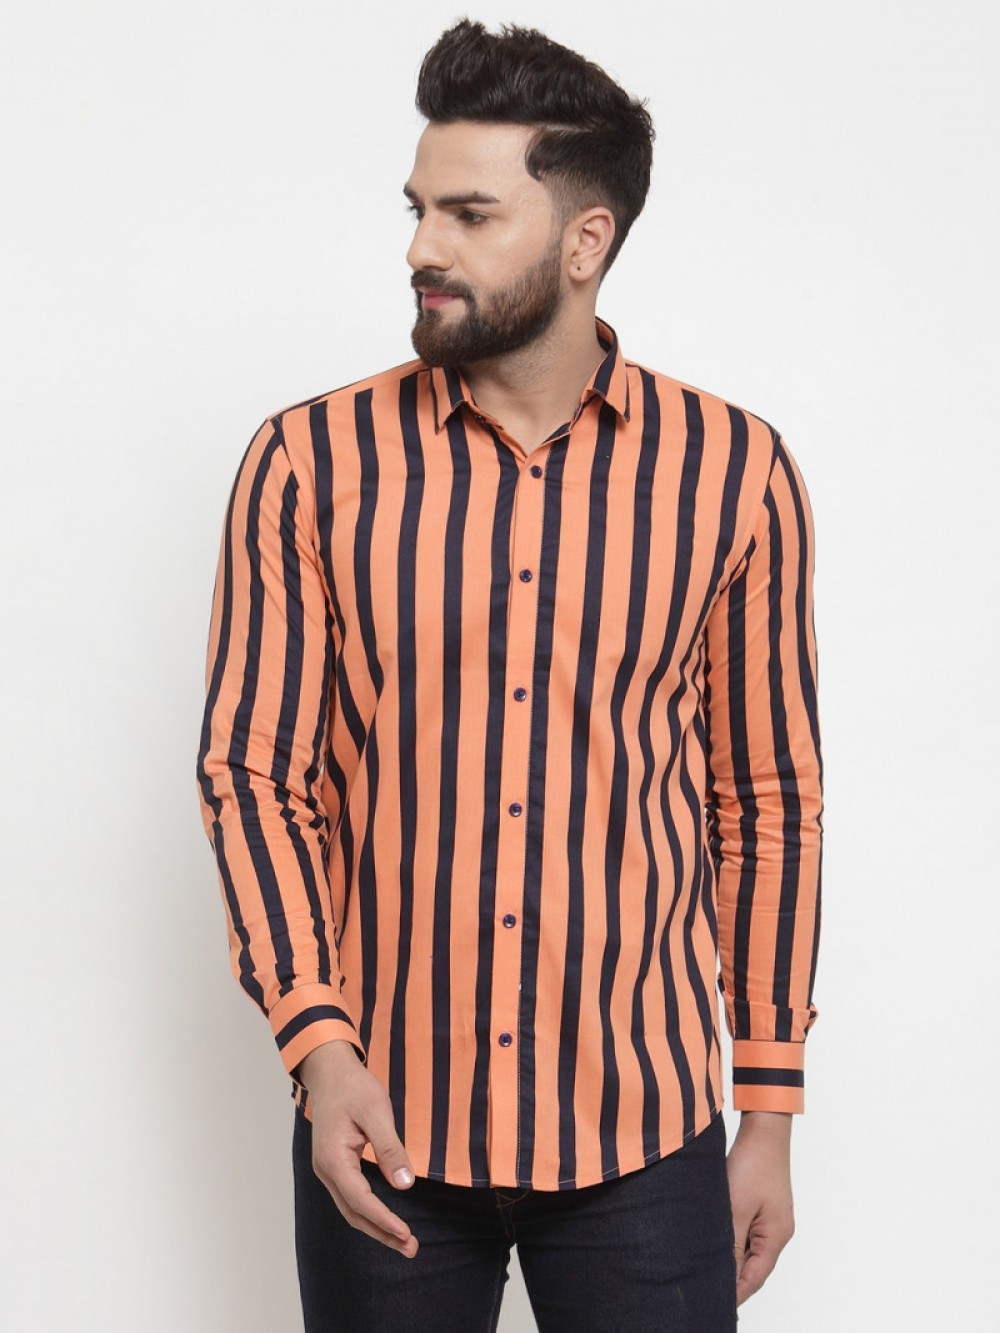 Attractive Orange Color With Small Black Striped Wear Shirt